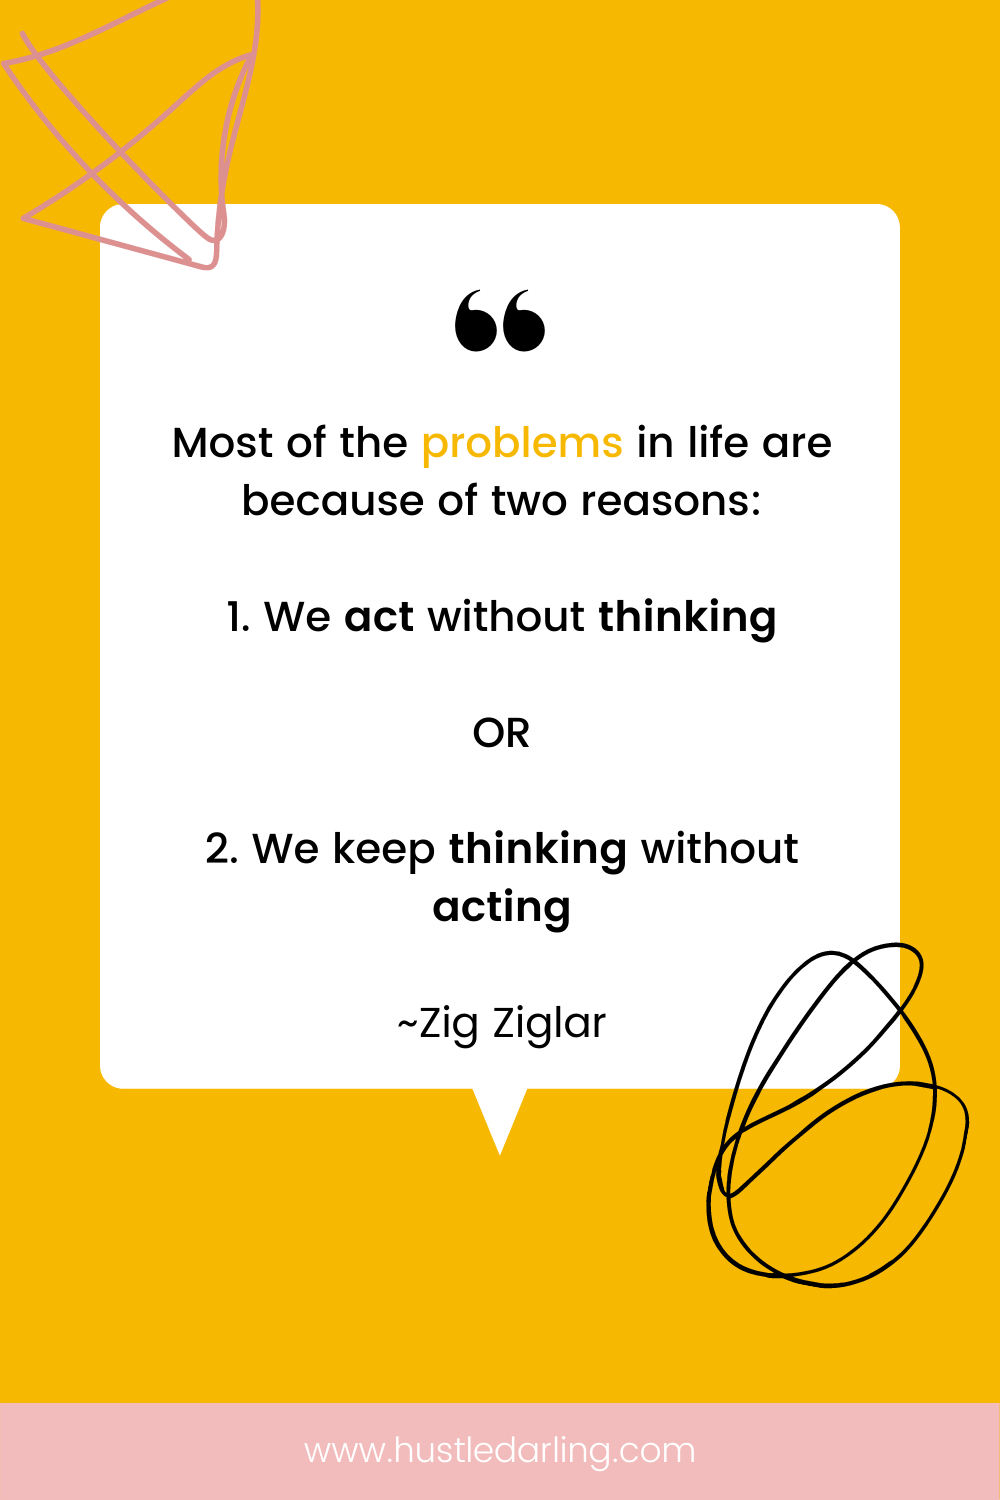 """A pink squiggly line is in the top corner of the image and a black loopy squiggle in the bottom corner. On a bright yellow background is a white speech bubble with a large quotation mark at the top. Text underneath reads """"Most of the problems in life are because of two reasons: 1. We act without thinking or 2. We keep thinking without actign ~ Zig Ziglar"""""""